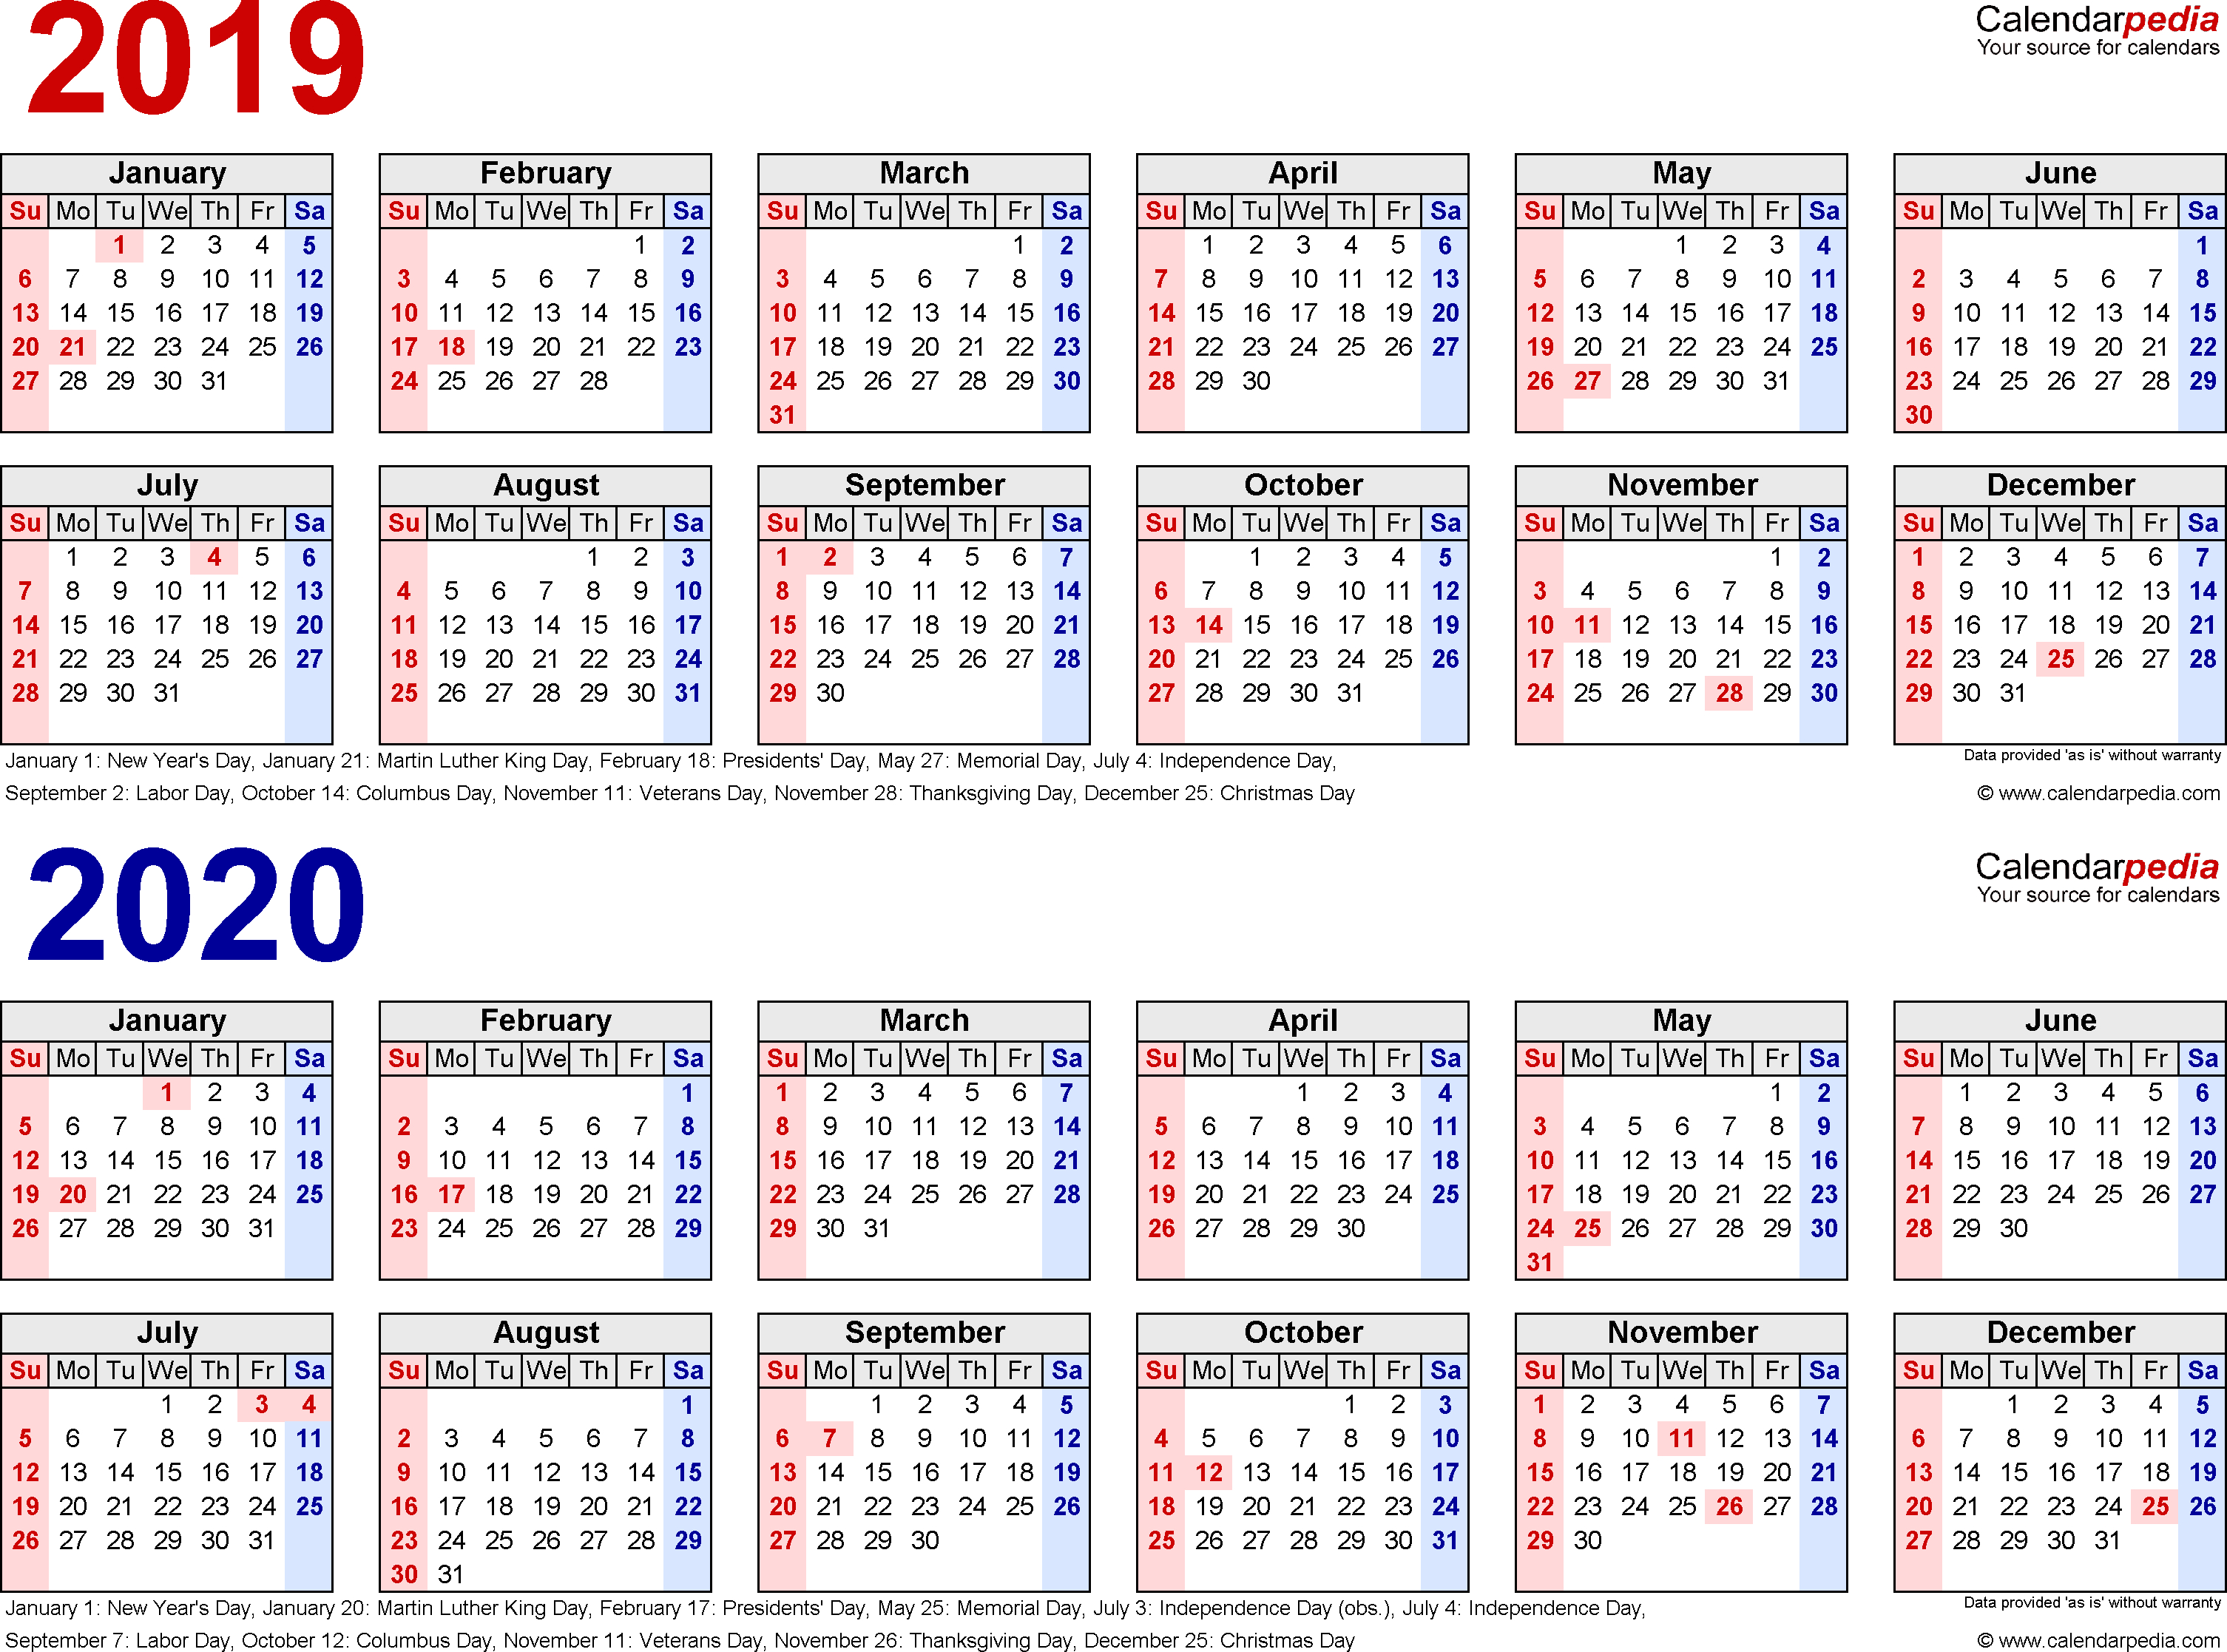 2019-2020 Calendar - Free Printable Two-Year Pdf Calendars with regard to Free Printable Calendars 2019-2020 With Holidays